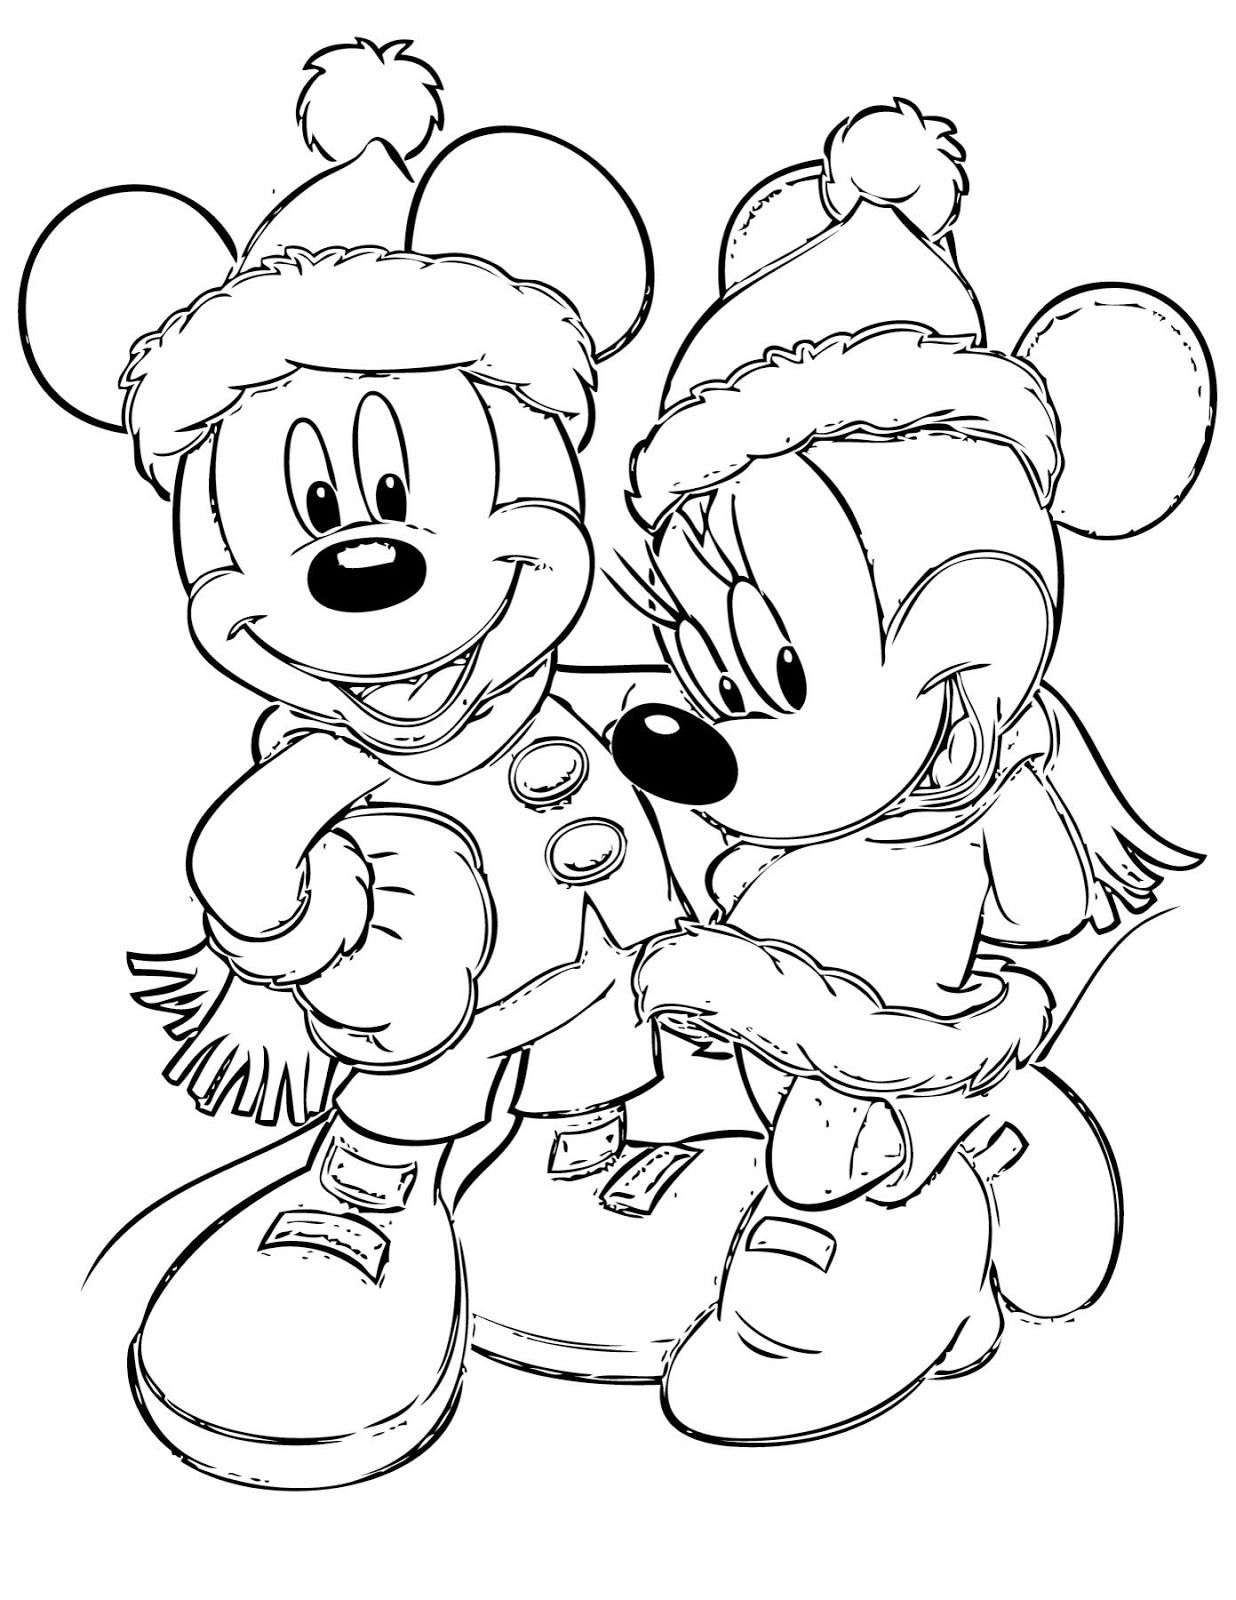 Free Disney Christmas Printable Coloring Pages for Kids ... | 1600x1236